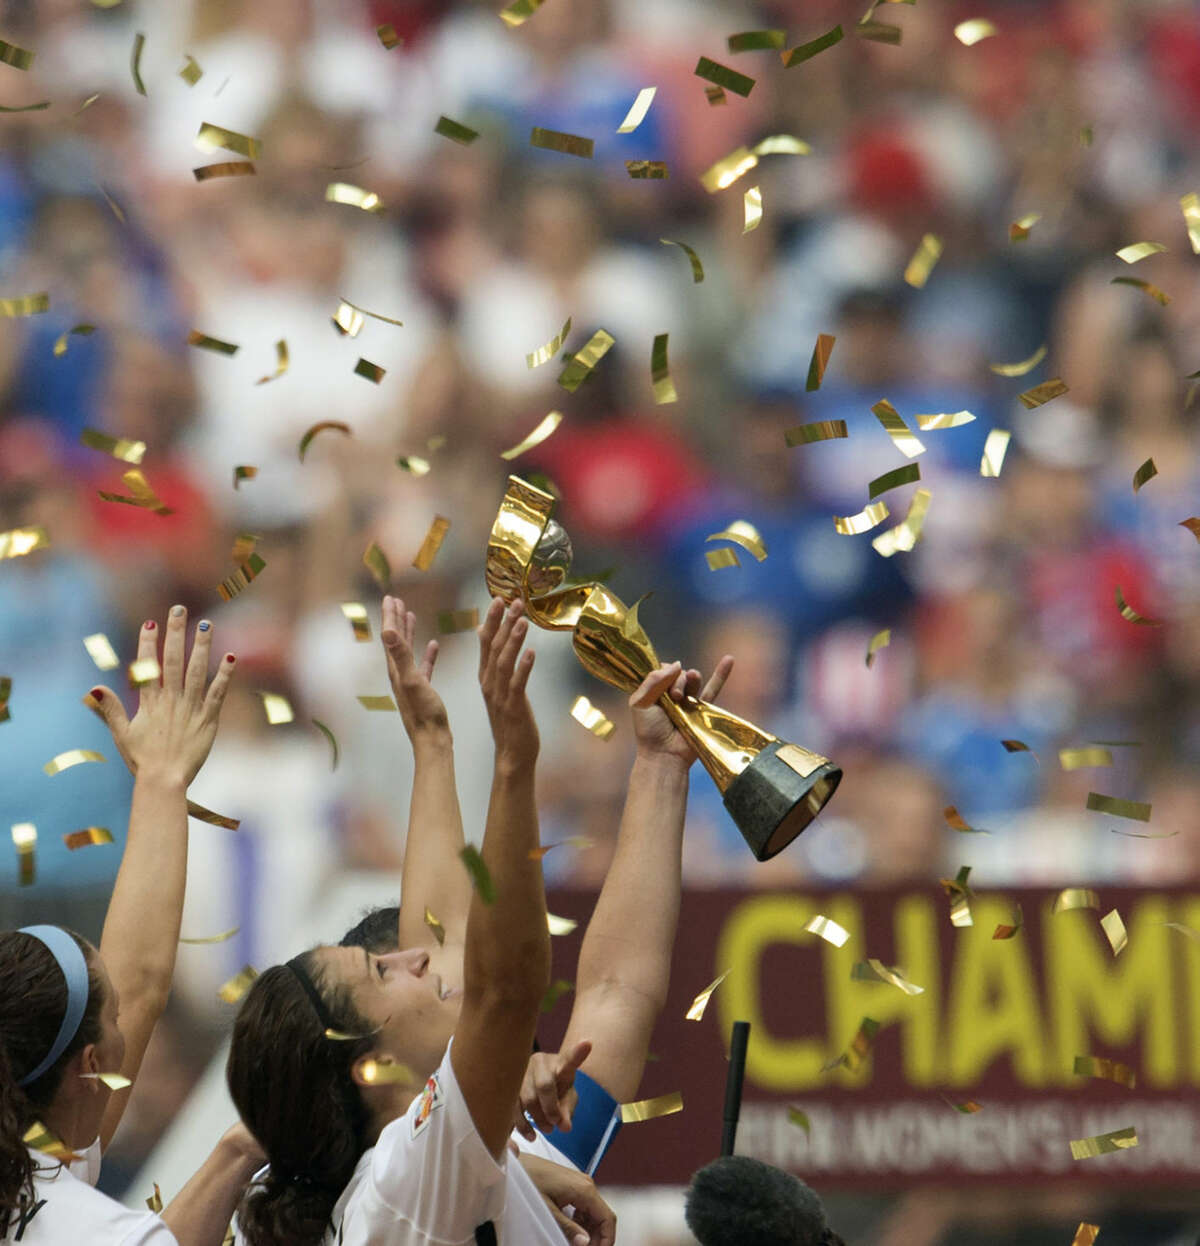 USA team members lift the trophy in celebration following their win over Japan at the FIFA Women's World Cup soccer championship in Vancouver, British Columbia, Canada, Sunday, July 5, 2015. (Jonathan Hayward/The Canadian Press via AP) MANDATORY CREDIT